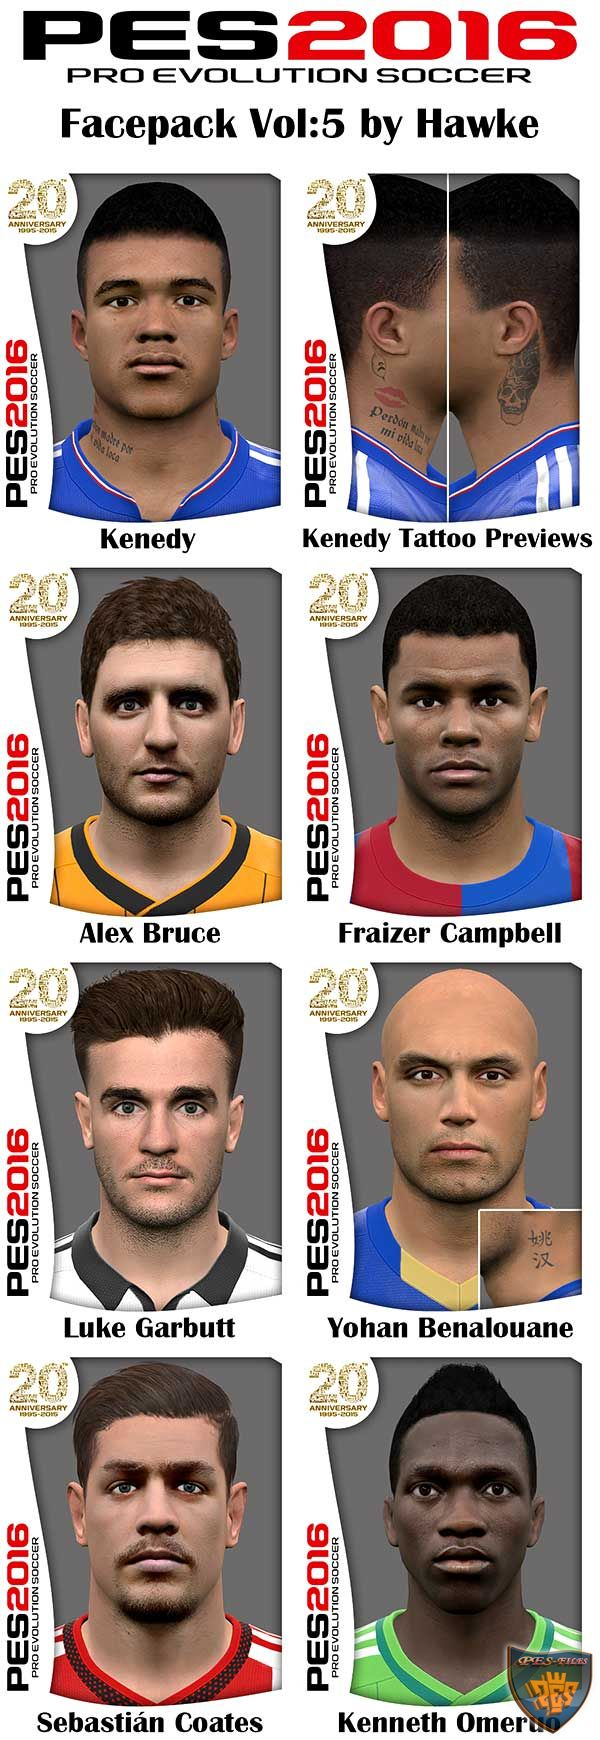 Pes 2016 Facepack Vol5 by Hawke